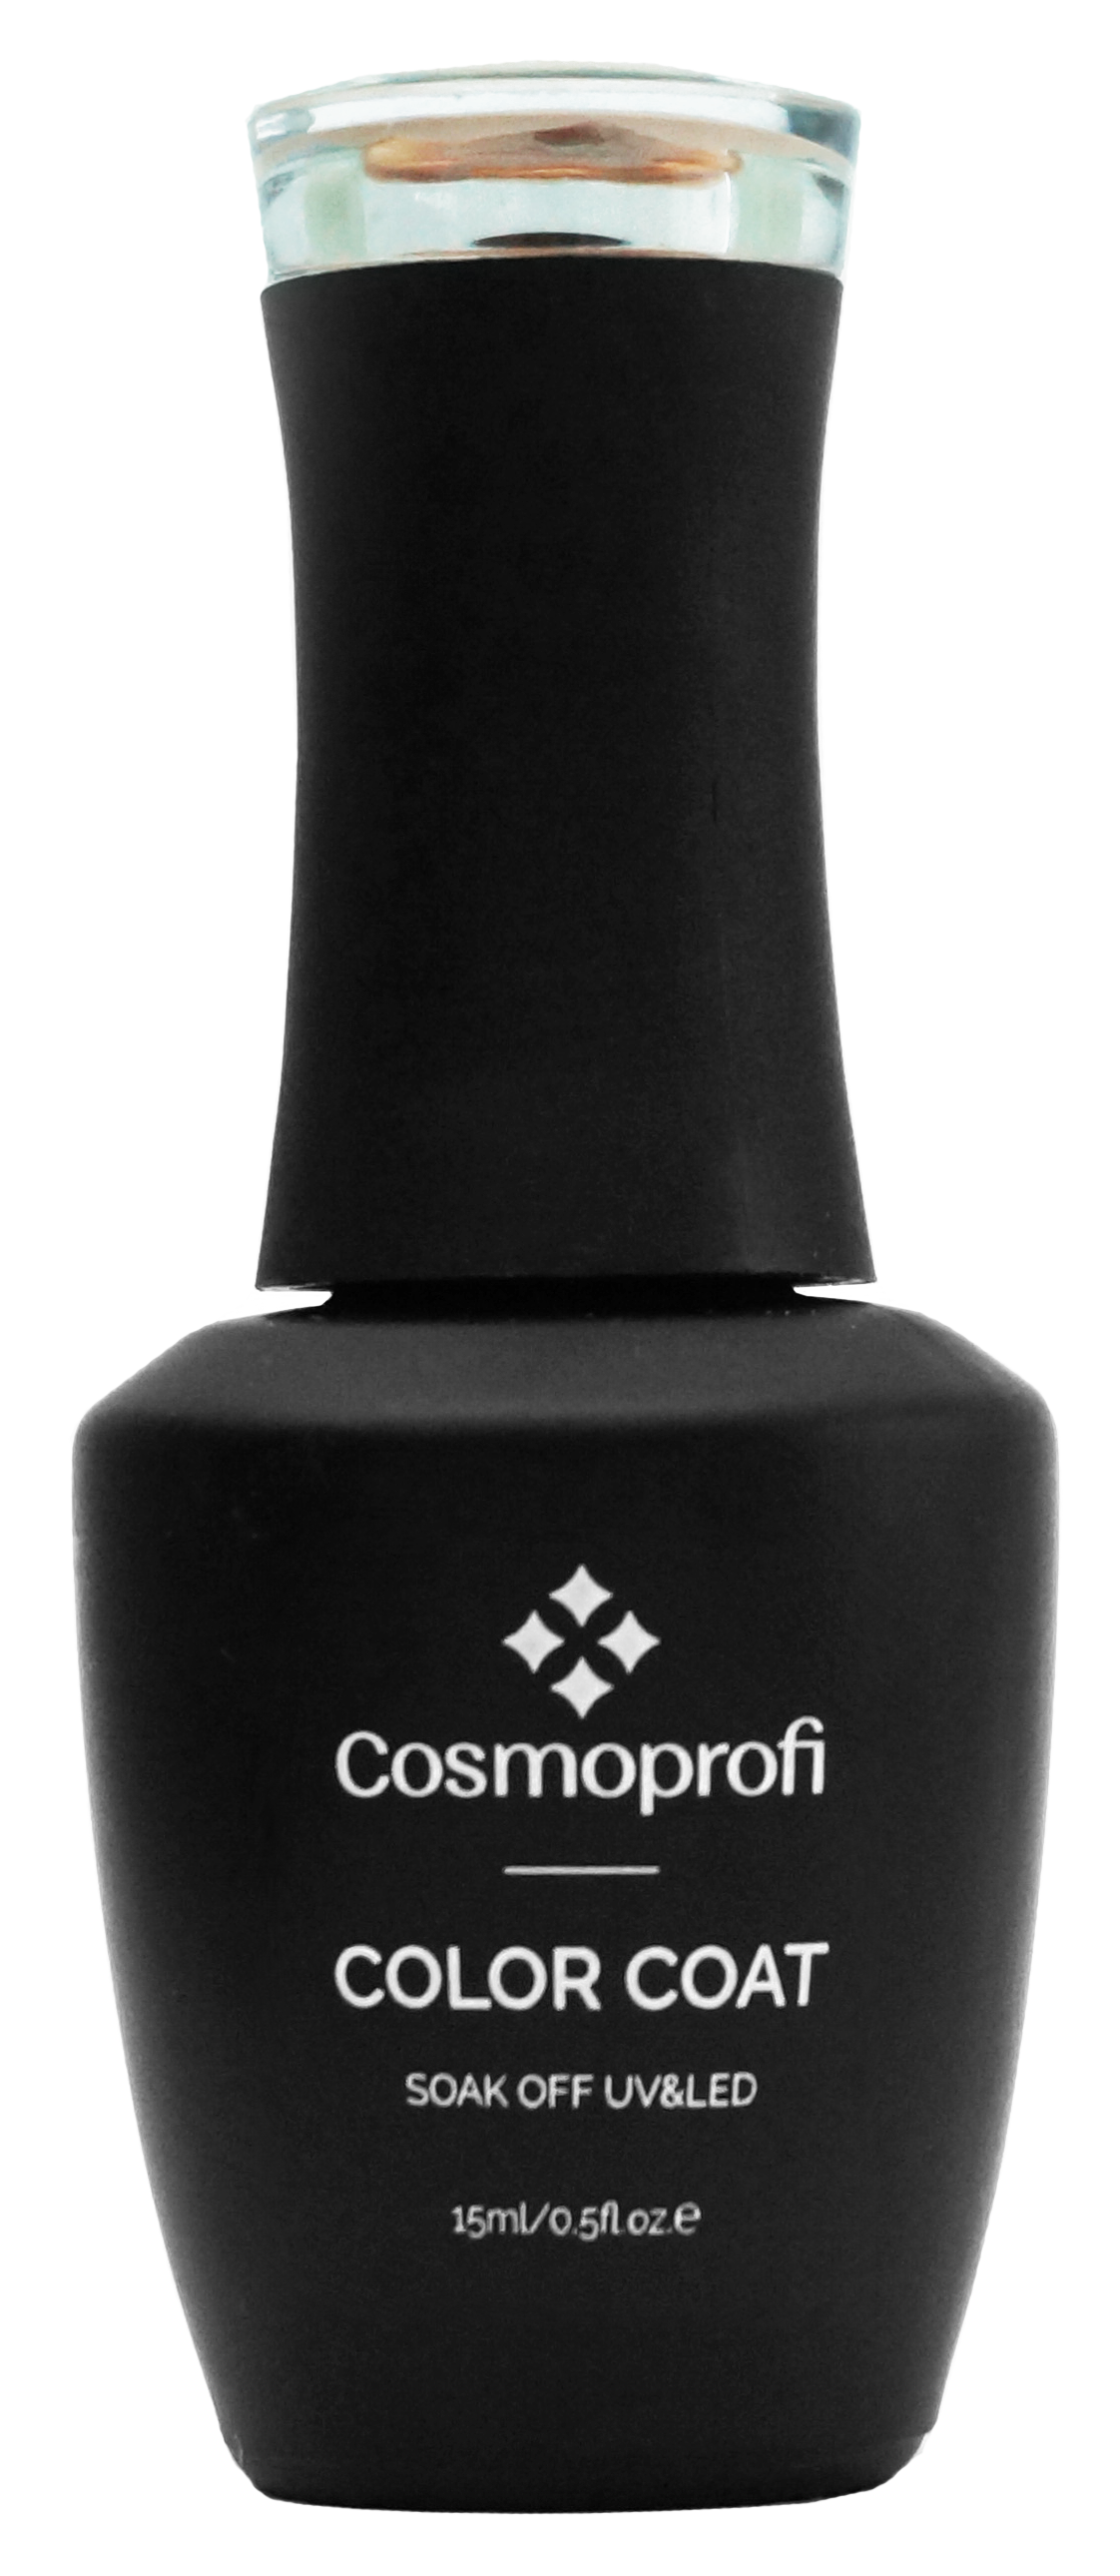 Гель-лак Cosmoprofi, Color coat № 277, 15 мл